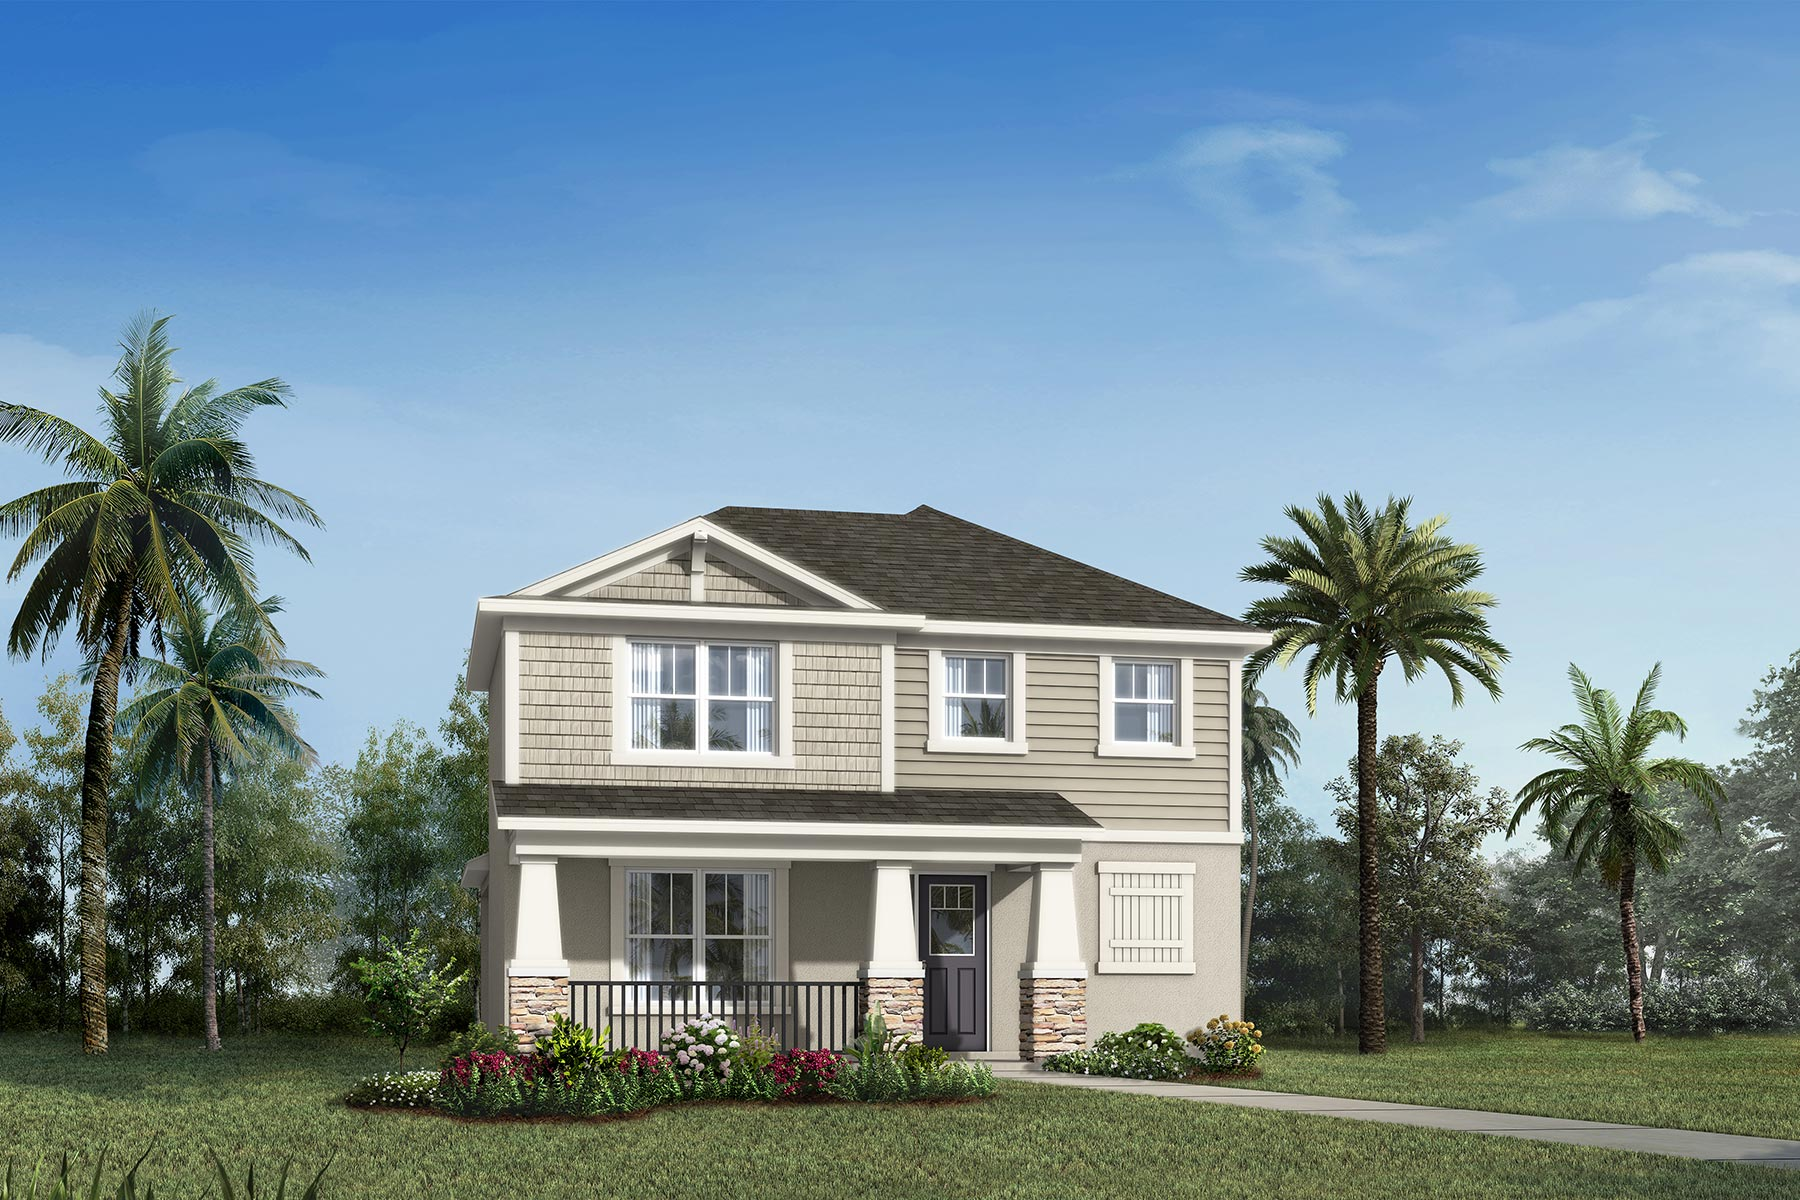 Belmont Plan Elevation Front at Tohoqua in Kissimmee Florida by Mattamy Homes